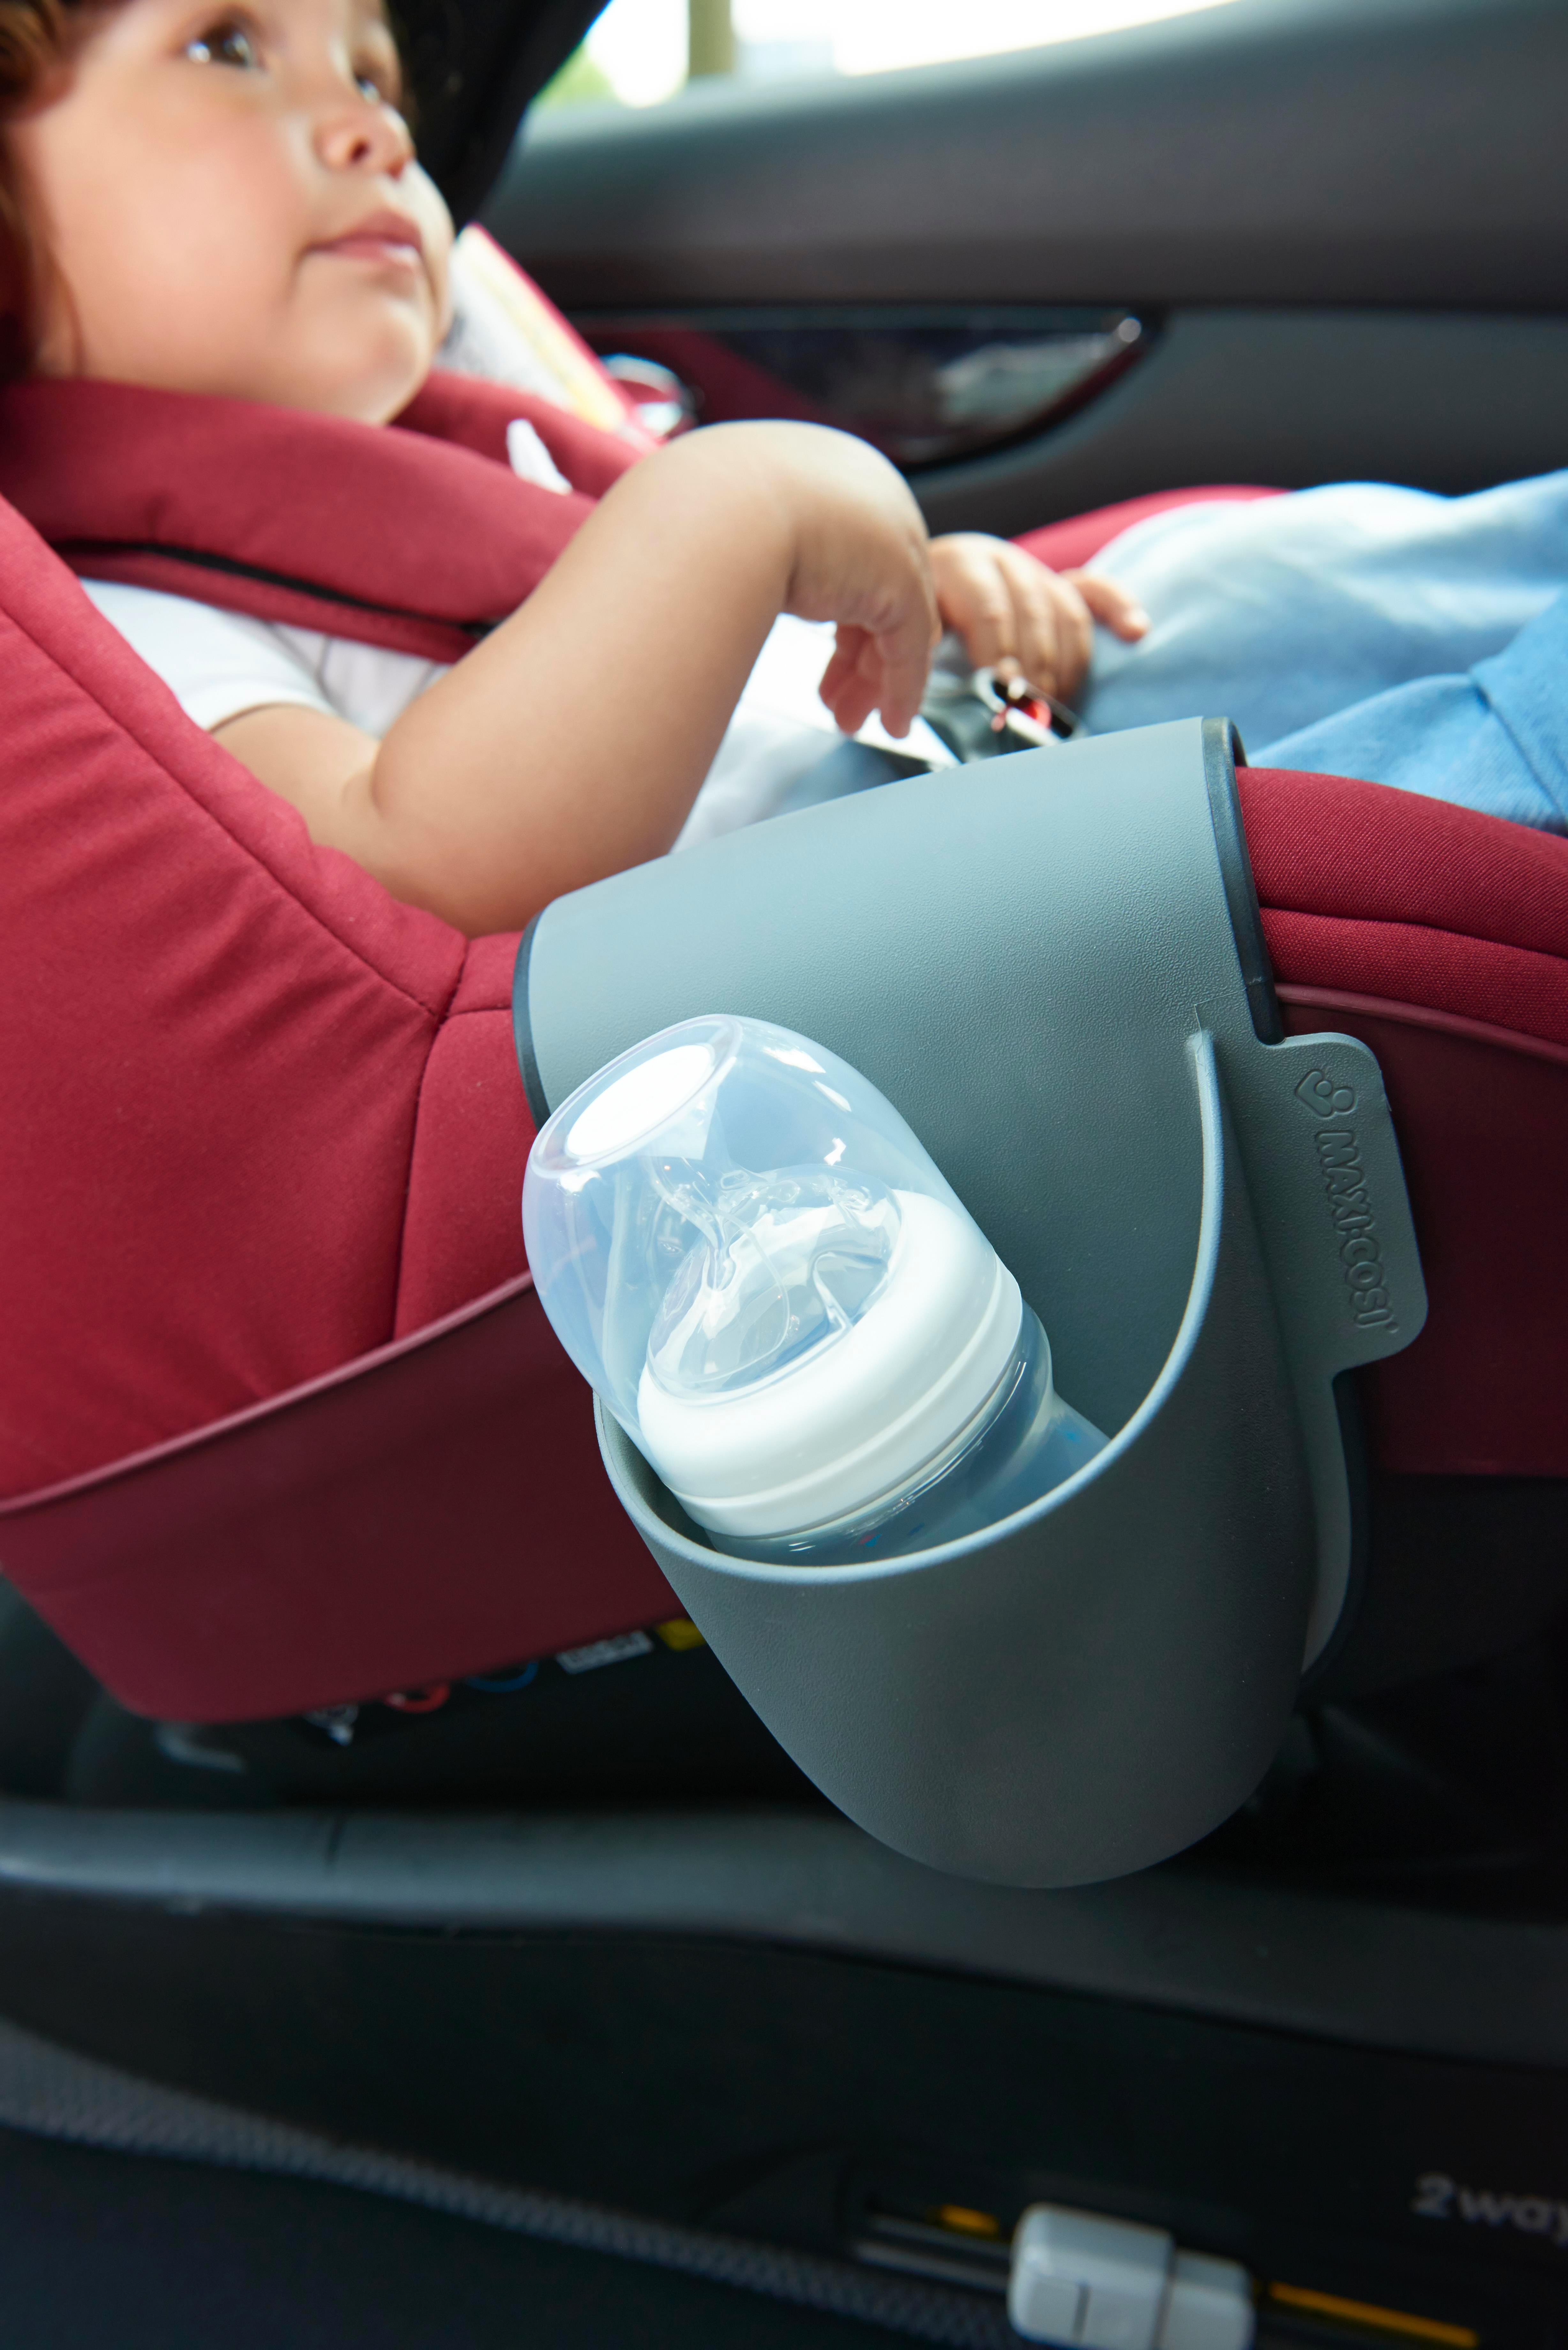 Maxi-Cosi Universal Pocket Cup Holder, Grey: Amazon.co.uk: Baby